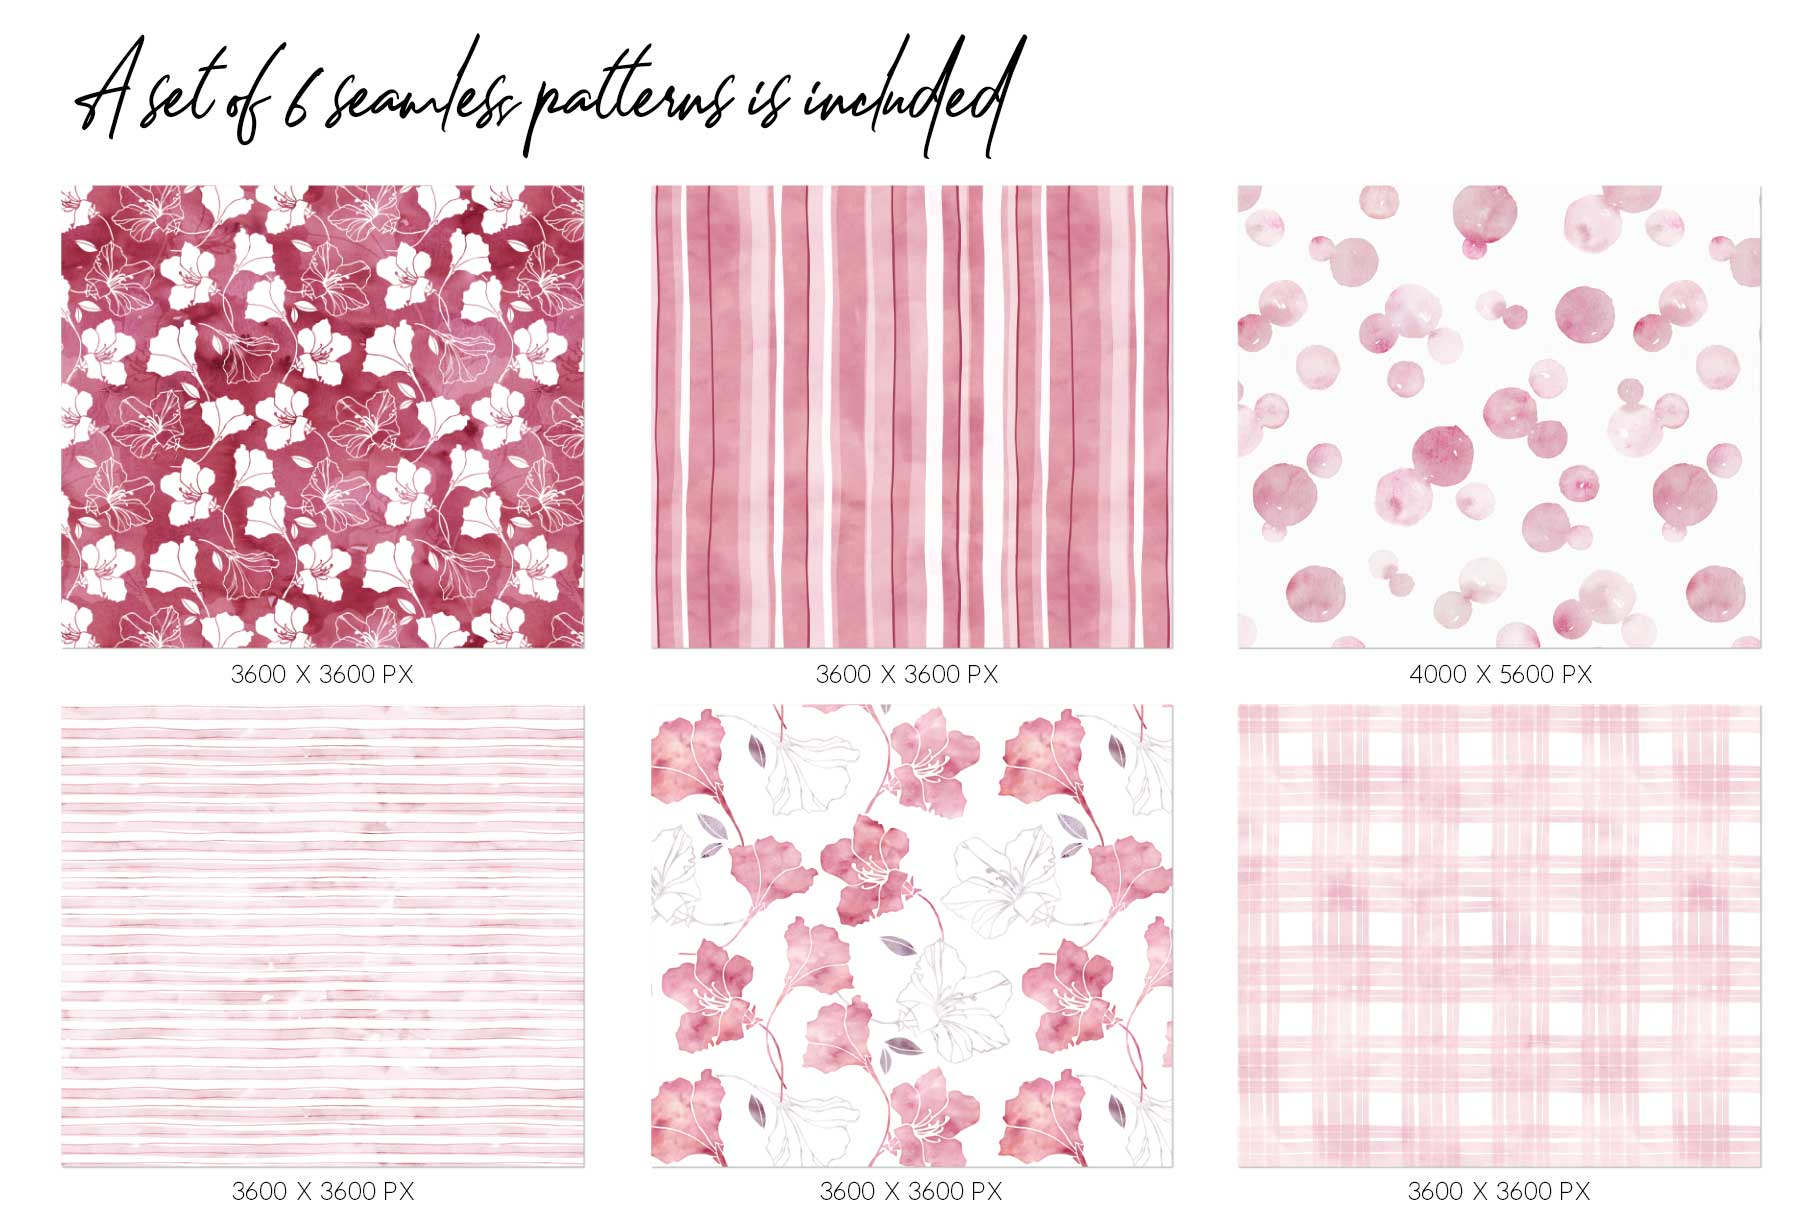 15 Huge Seamless Pink & Grey Watercolor Textures example image 5